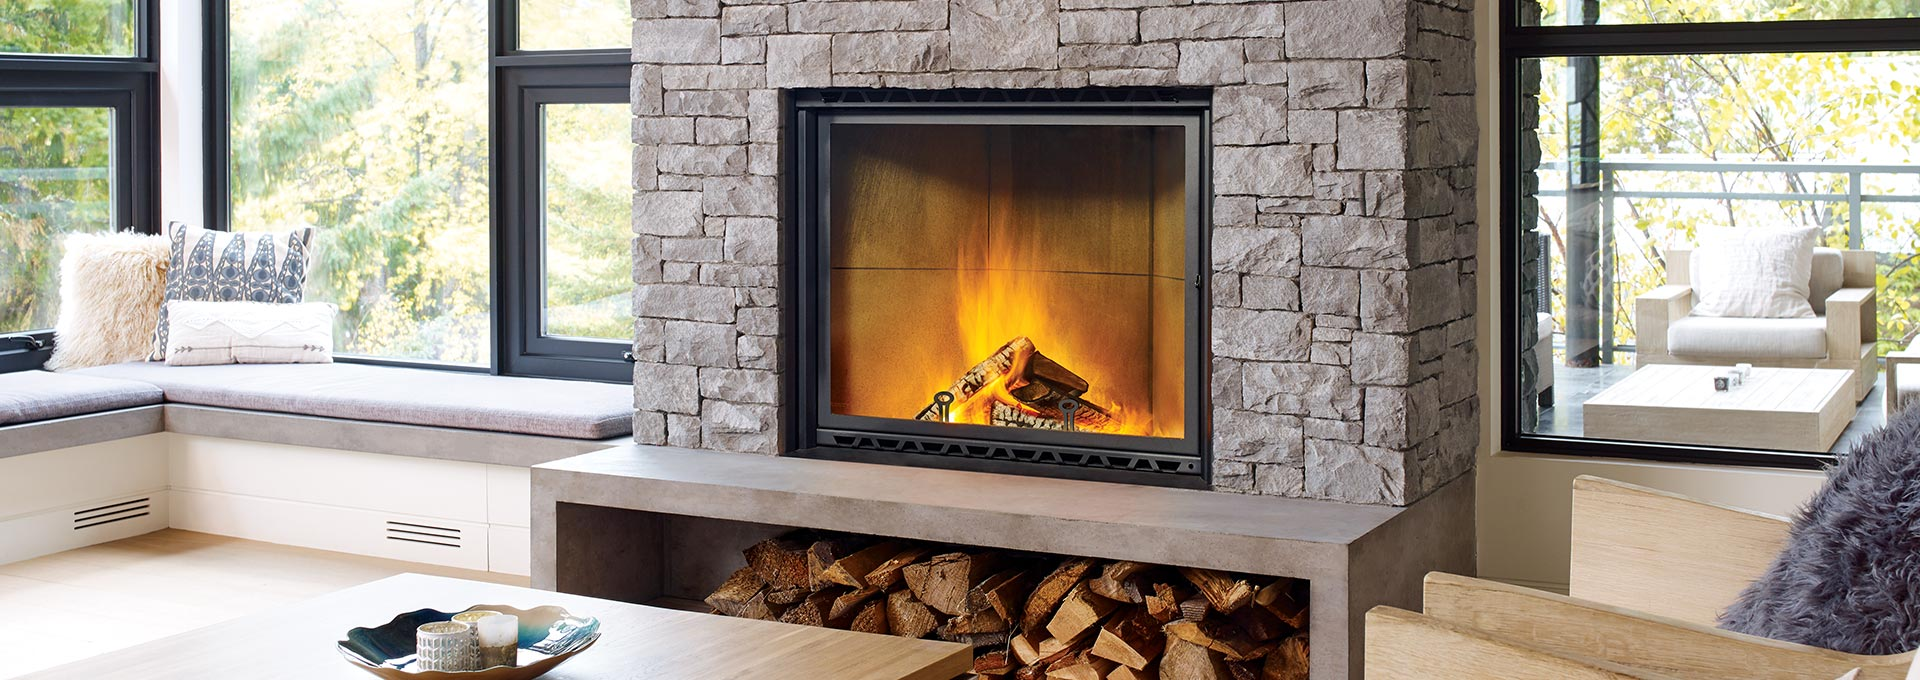 Types of Wood Burning Fireplaces